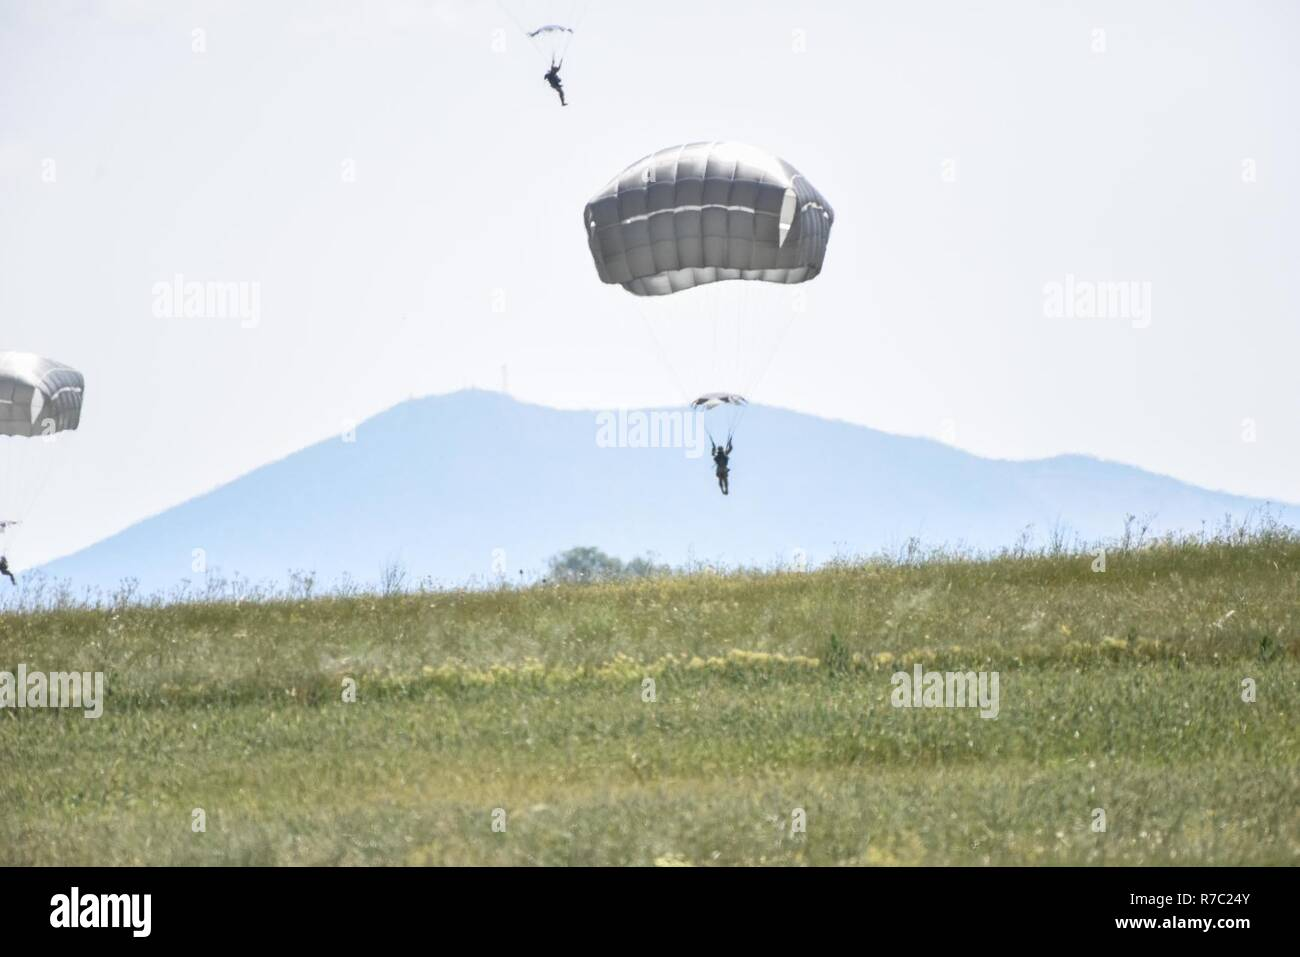 Sky Soldiers from 1st Battalion, 503rd Infantry Regiment, 173rd Airborne Brigade and paratroopers from the 1st Paratrooper Commando Brigade, Greek Army execute an airborne operation, May 12, 2017 in Thessaloniki, Greece as a part of Exercise Bayonet Minotaur. 2017.Bayonet-Minotaur is a bilateral training exercise between U.S. Soldiers assigned to 173rd Airborne Brigade and the Greek Armed Forces, focused on enhancing NATO operational standards and developing individual technical skills. Stock Photo